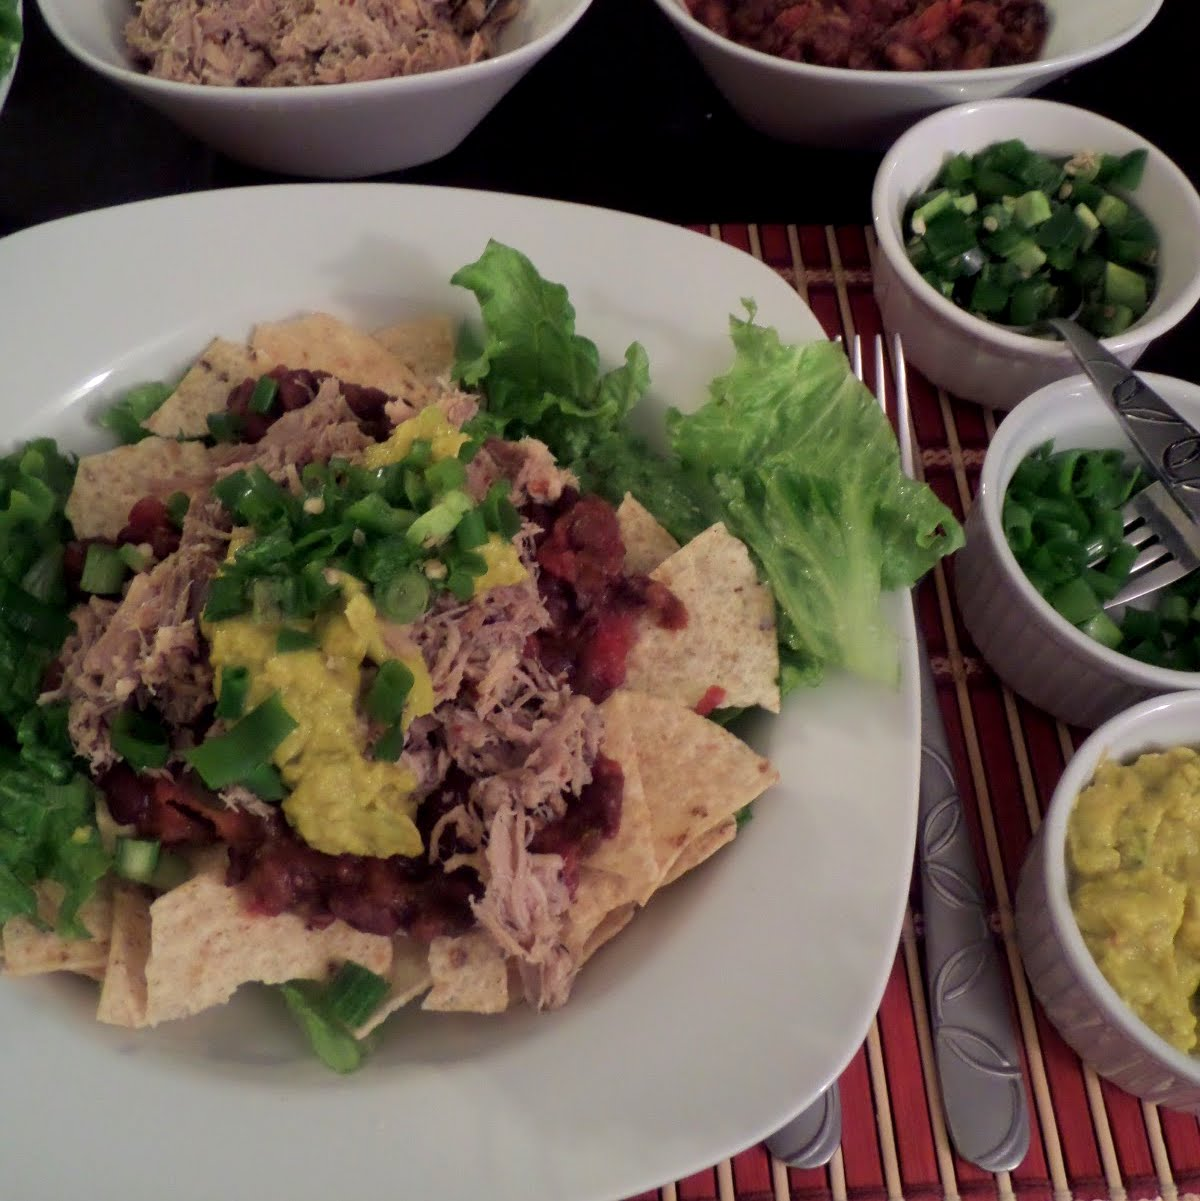 Pulled Pork Taco Salad:  A taco salad topped with spicy black beans, pulled pork, and avocado.